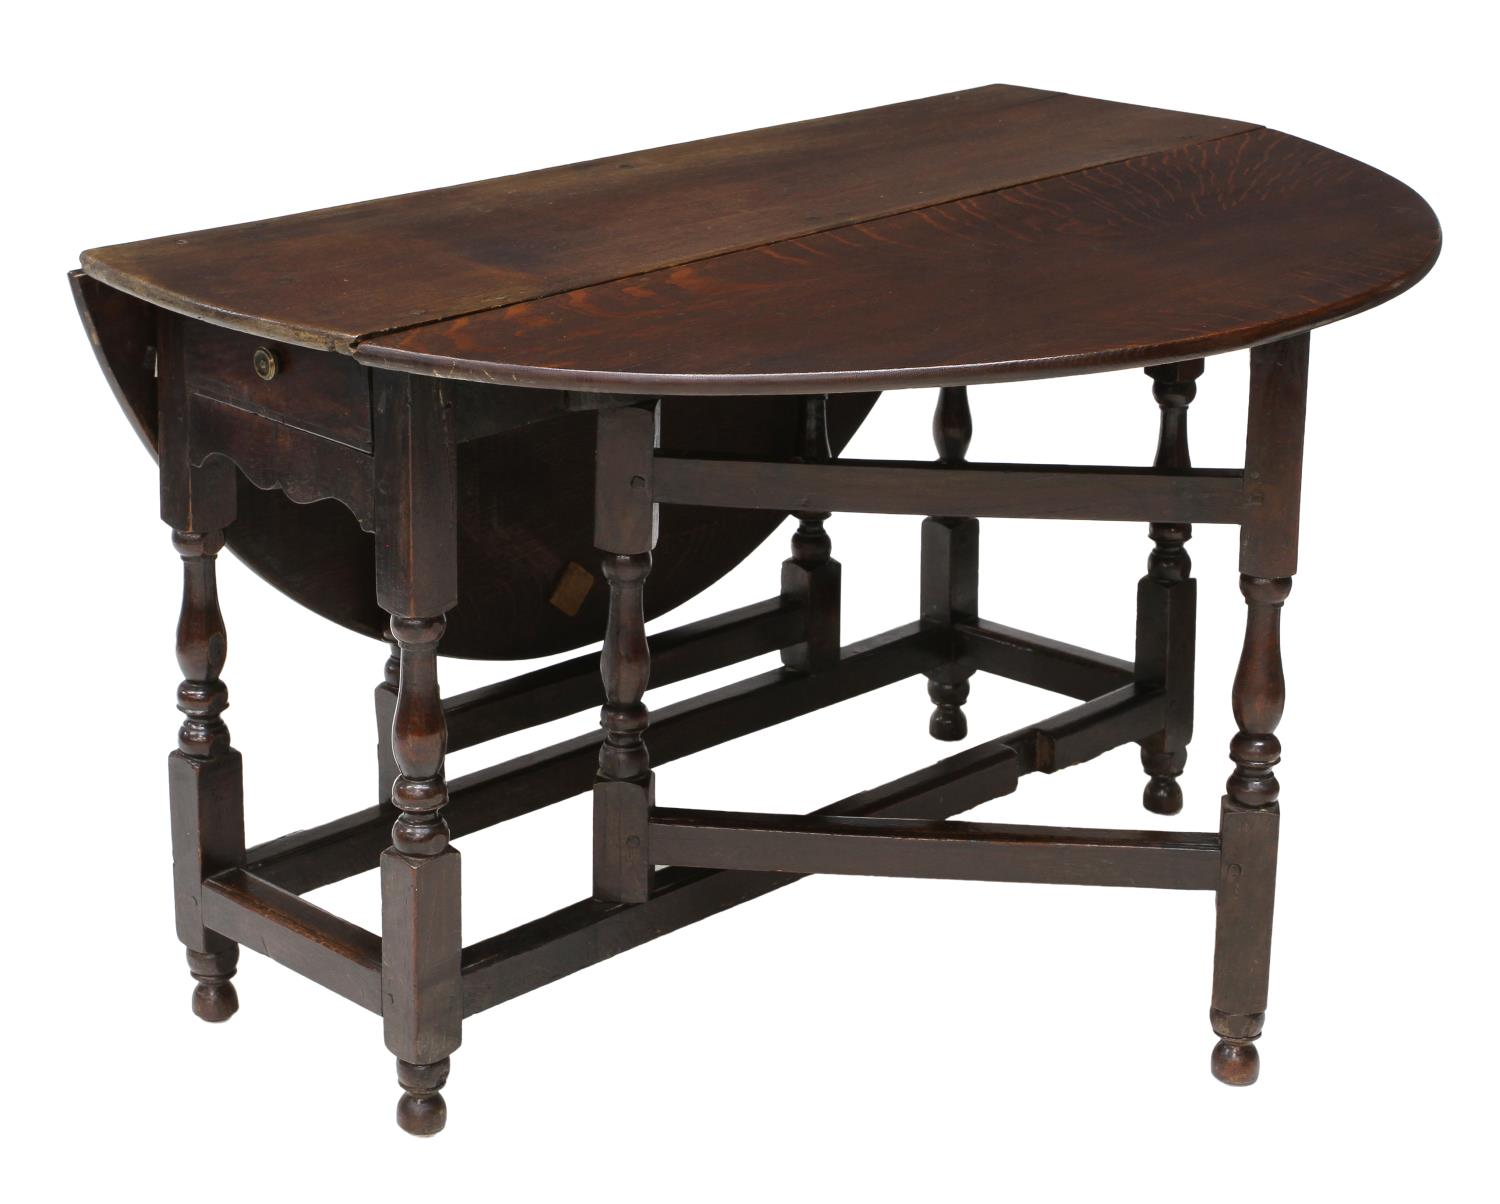 Large english oak drop leaf table the howard hand estate for Table 430 52